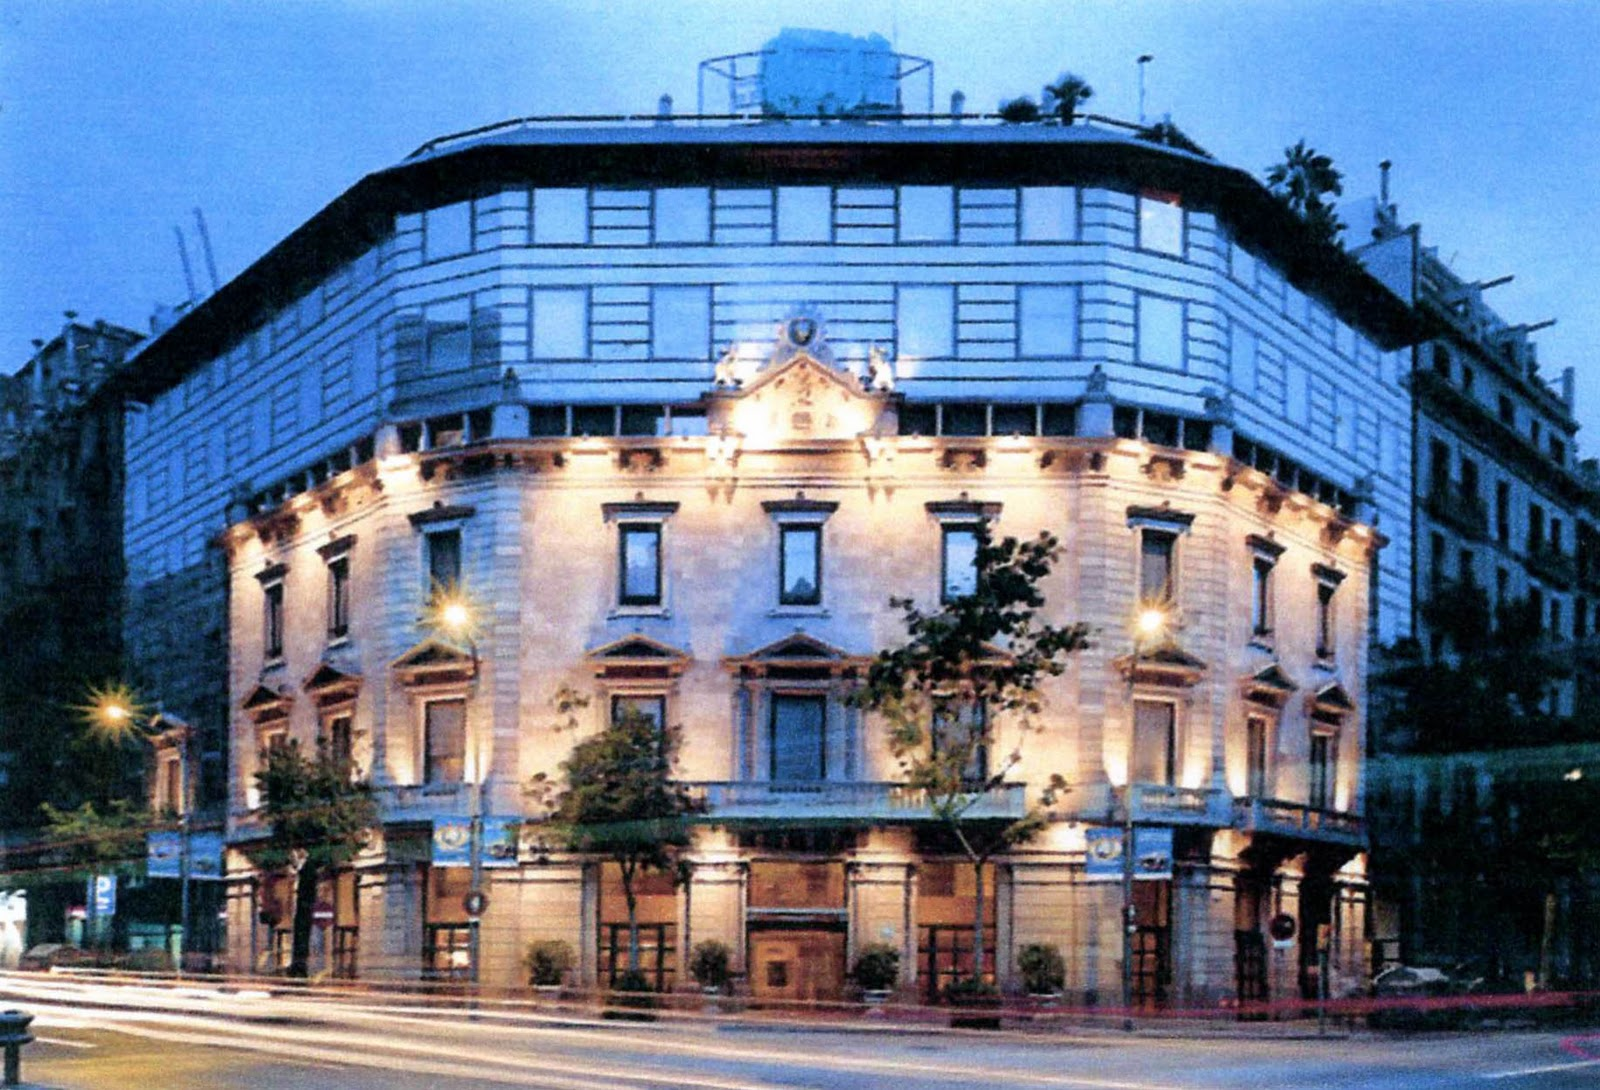 Hotelsforsaleinspain 5 star luxury hotel for sale in for 5 star hotels in